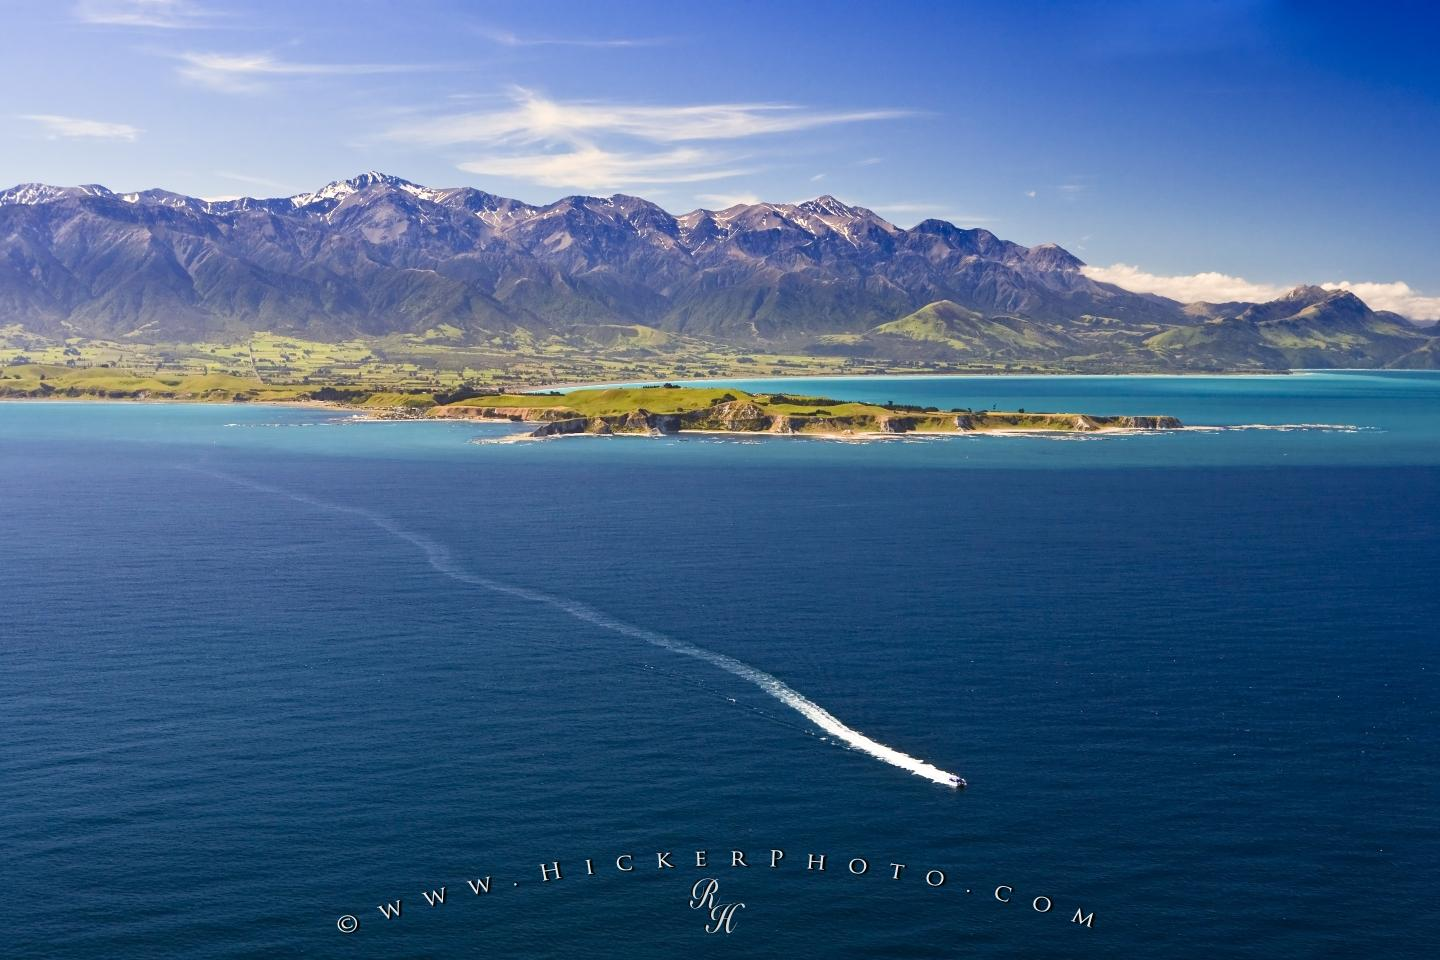 Kaikoura New Zealand  city photos gallery : ... of New Zealand, the Kaikoura Peninsula and Mountains, New Zealand